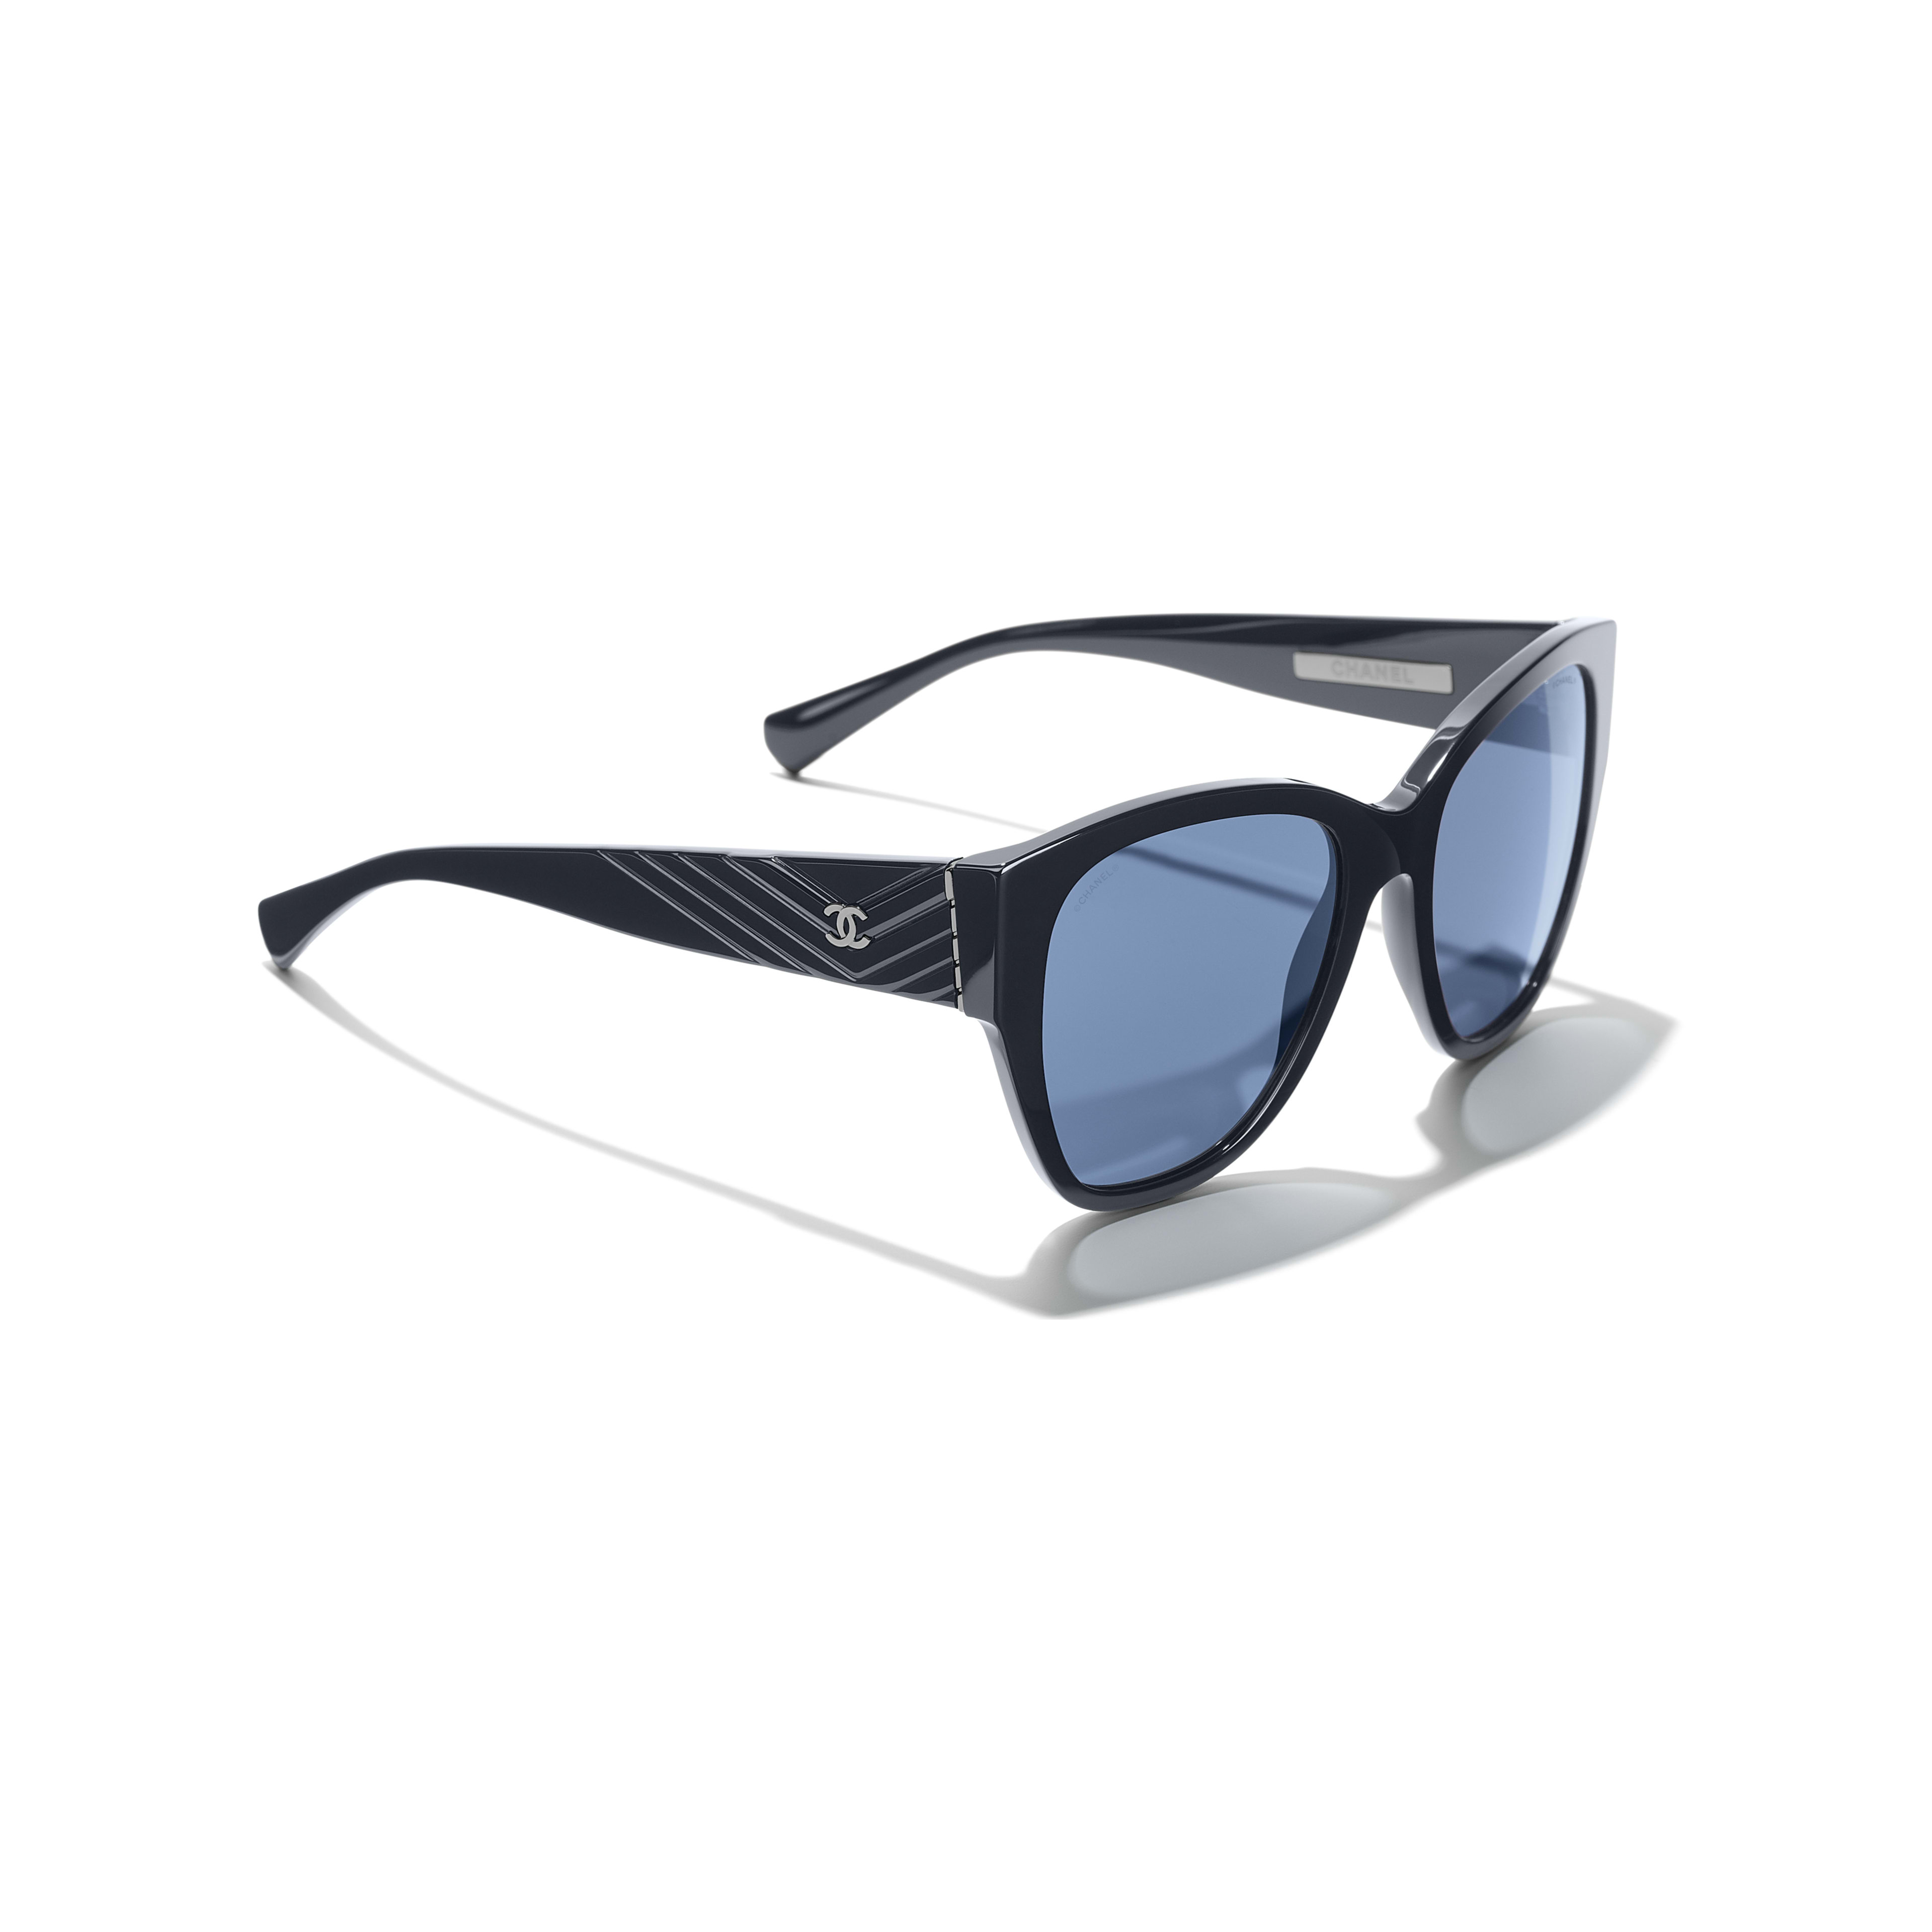 Butterfly Sunglasses - Dark Blue - Acetate - Extra view - see full sized version